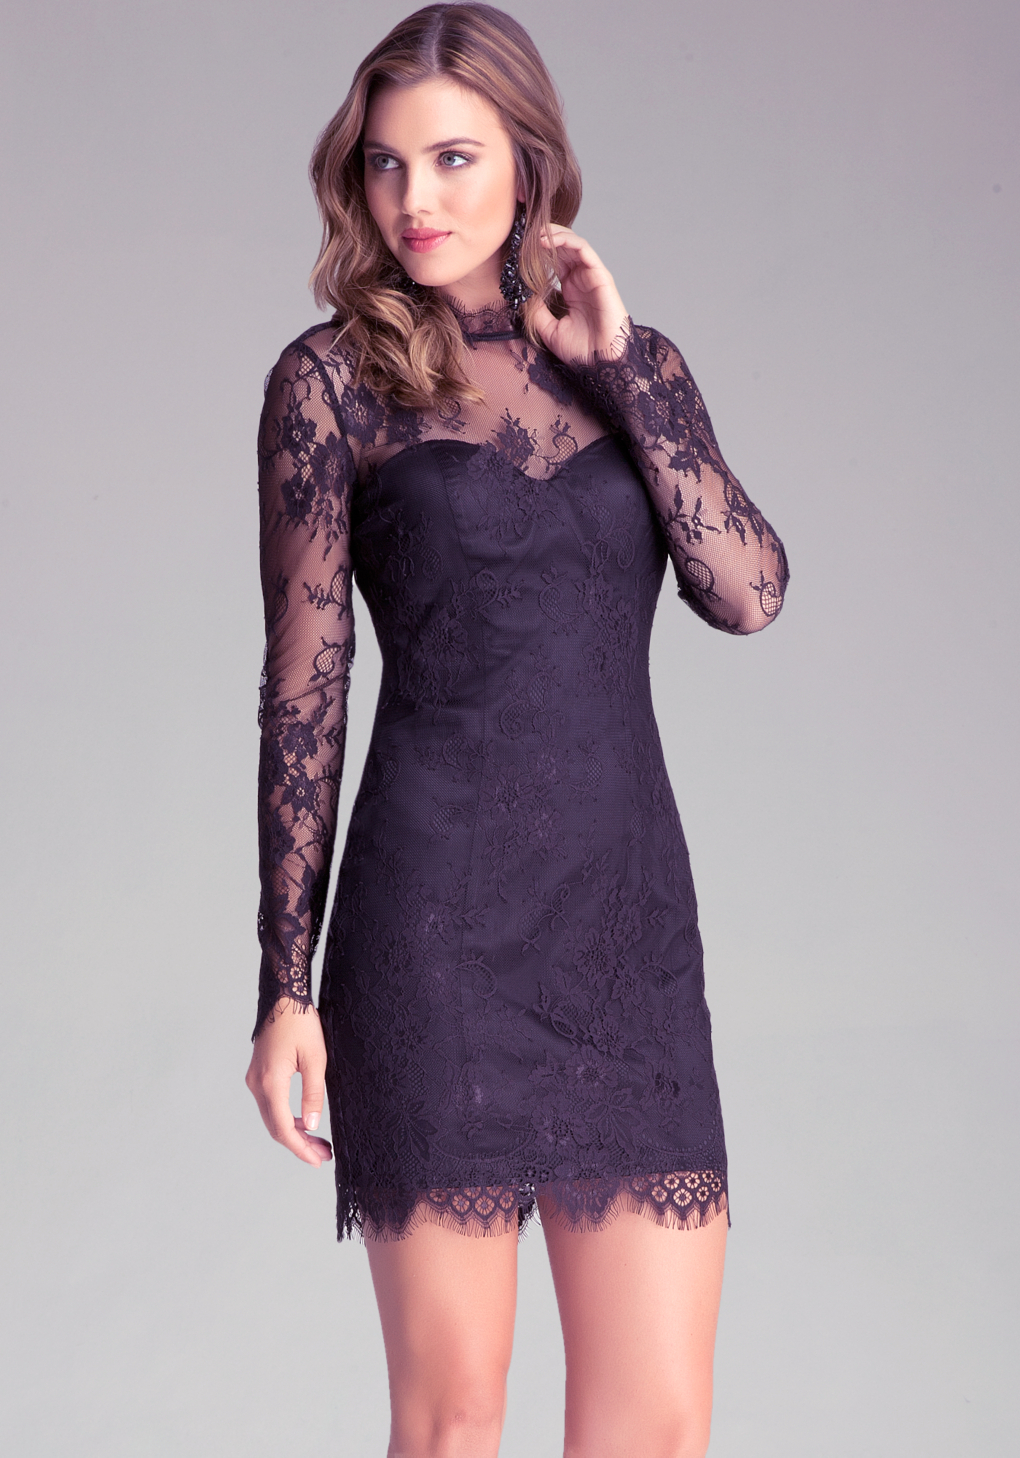 Bebe Dresses Bebe knows that dresses should be easy-to-wear and easy to style. That's why its range features bandage dresses, bodycon gowns and fit-and-flare styles that can be worn for work, parties, date nights and special occasions.